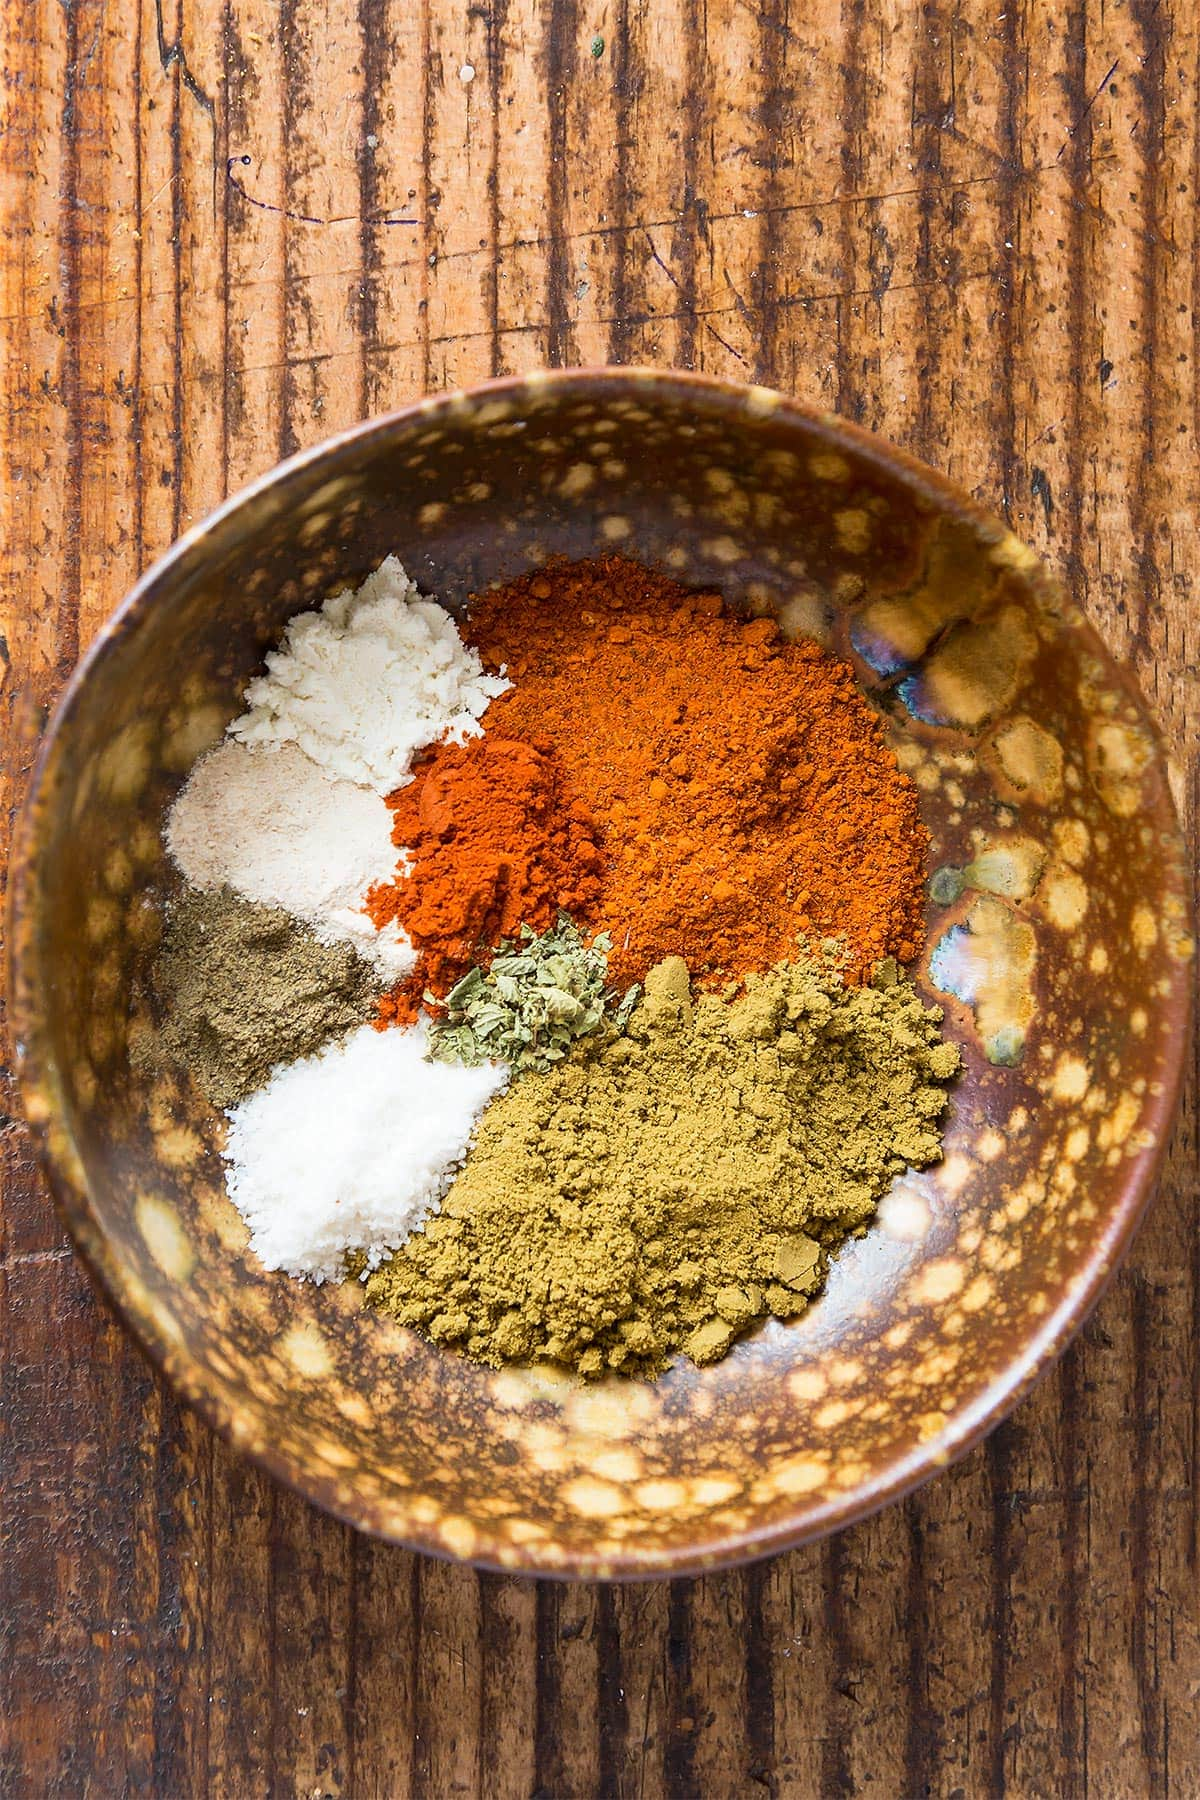 Homemade Taco Seasoning spices measured out in a bowl